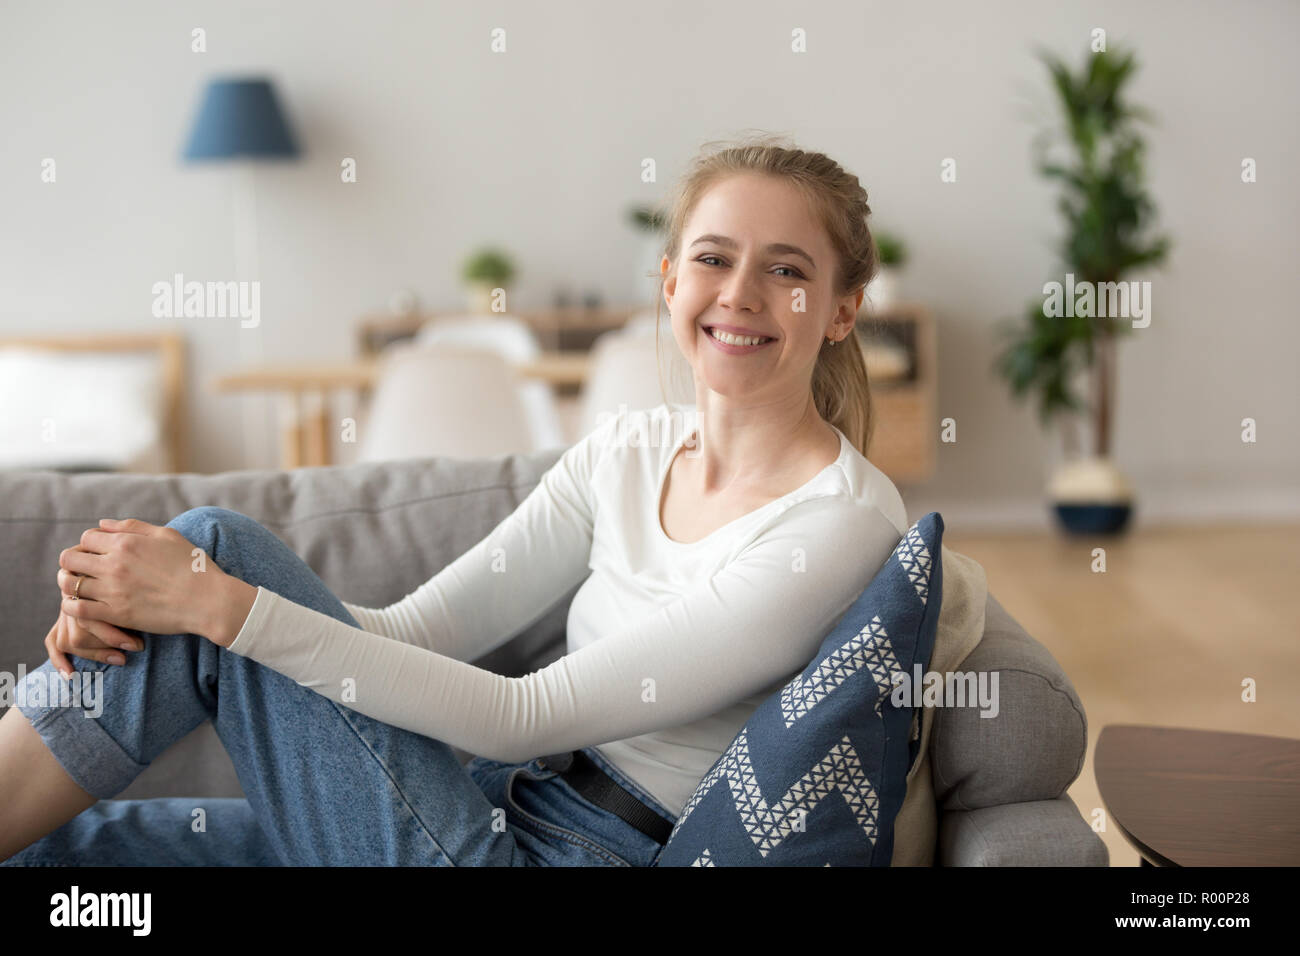 Happy young woman sitting on couch at home - Stock Image